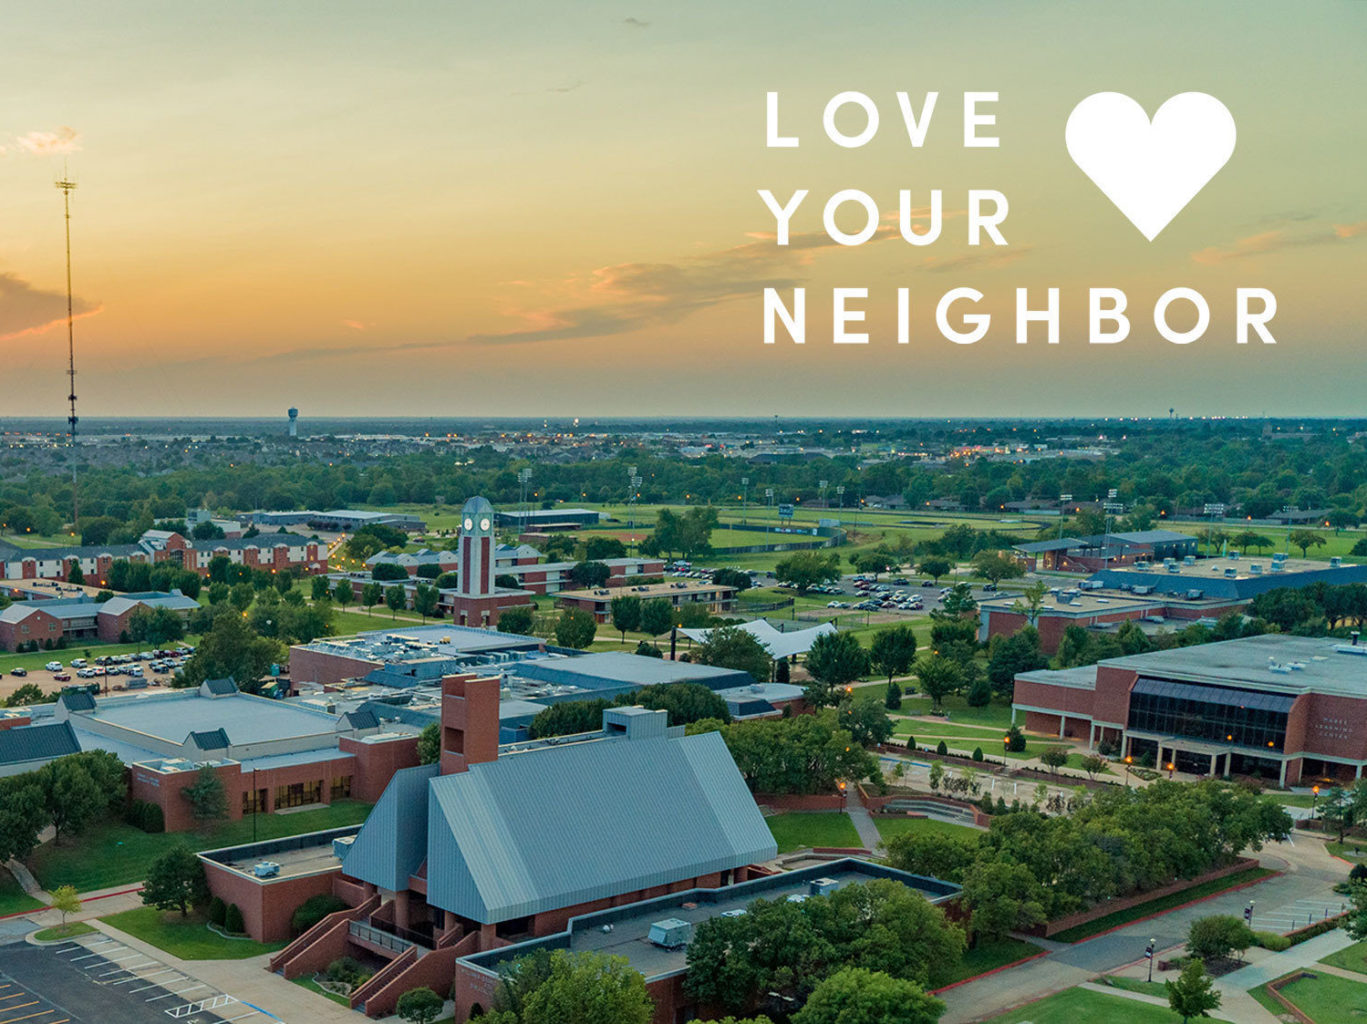 drone shot of campus with Love your neighbor title